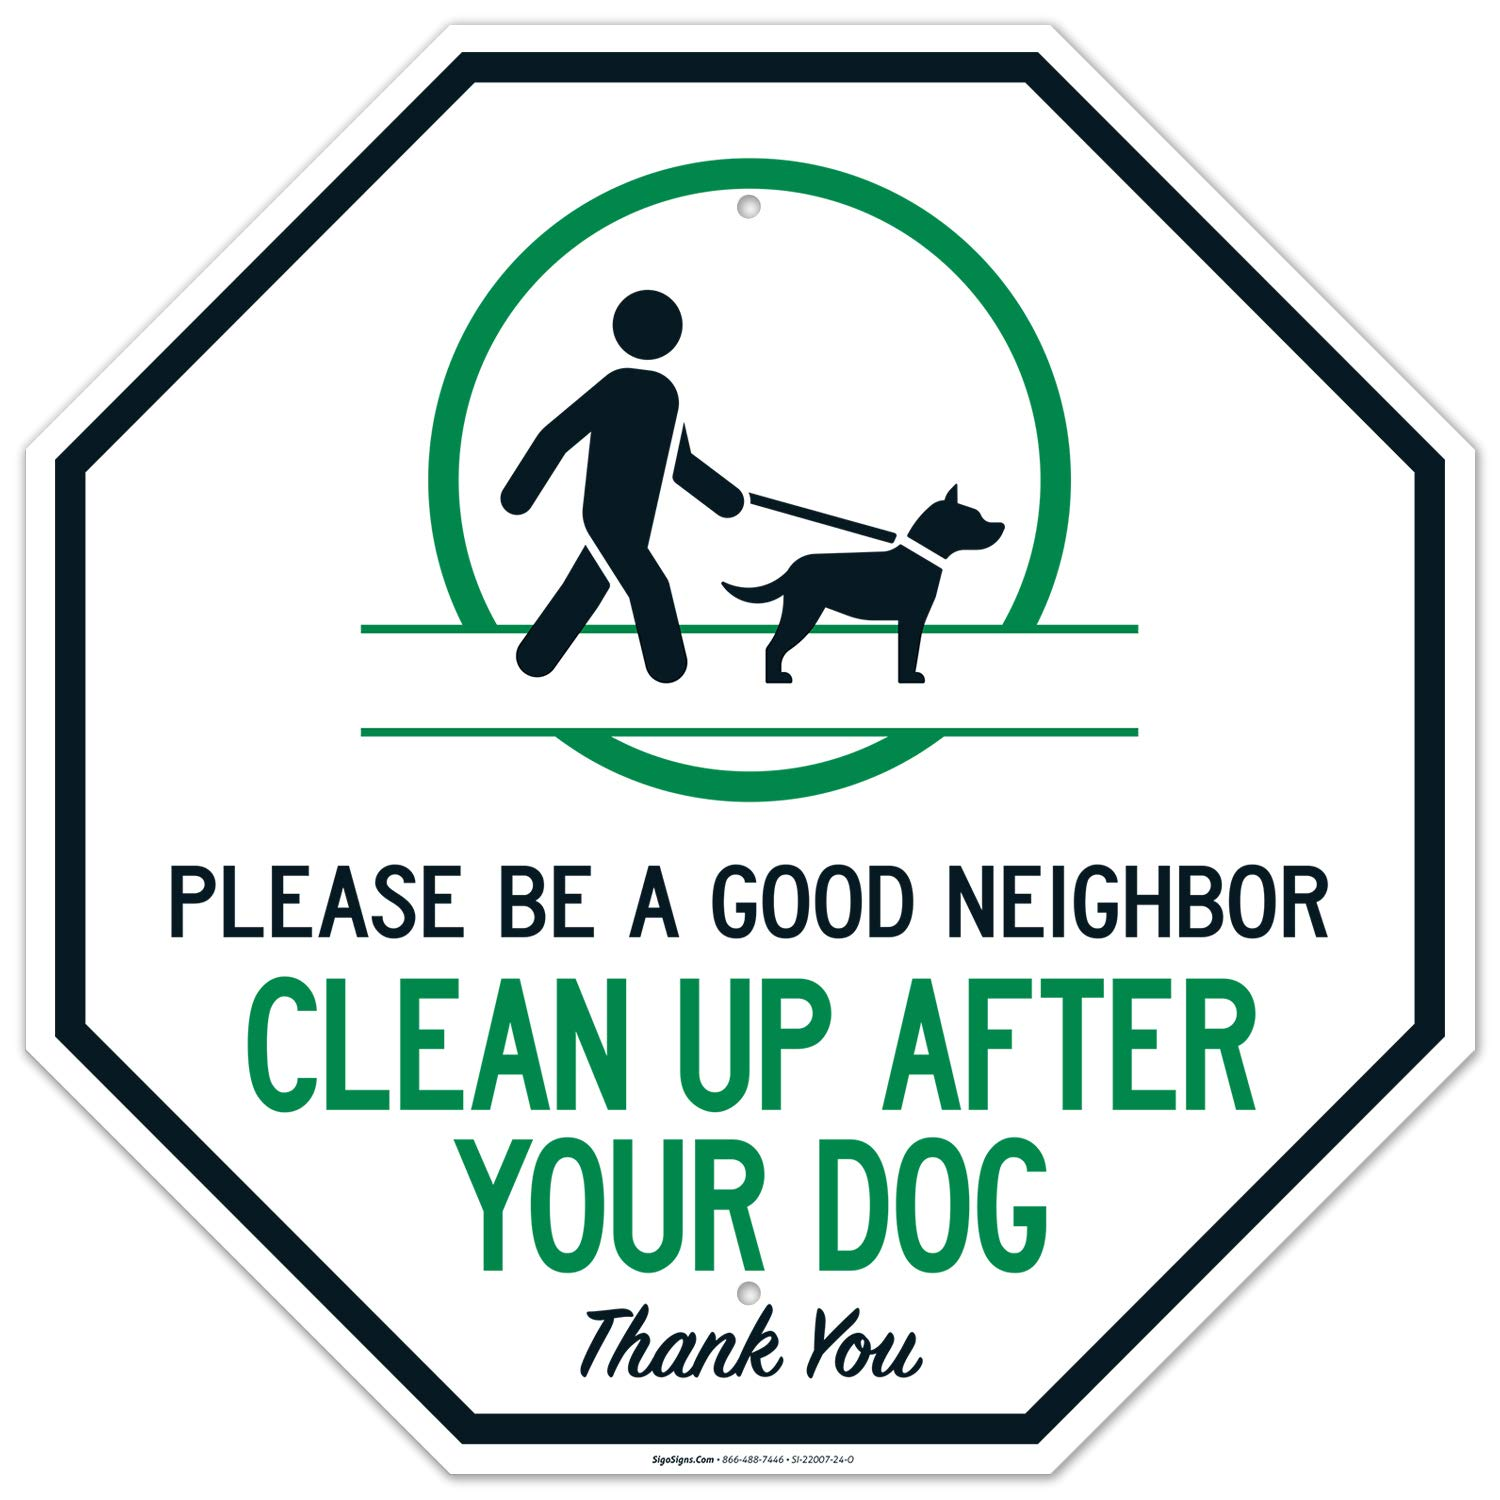 Clean Up After Your Dog Sign A 24 倉庫 Neighbor Good Please Be 安値